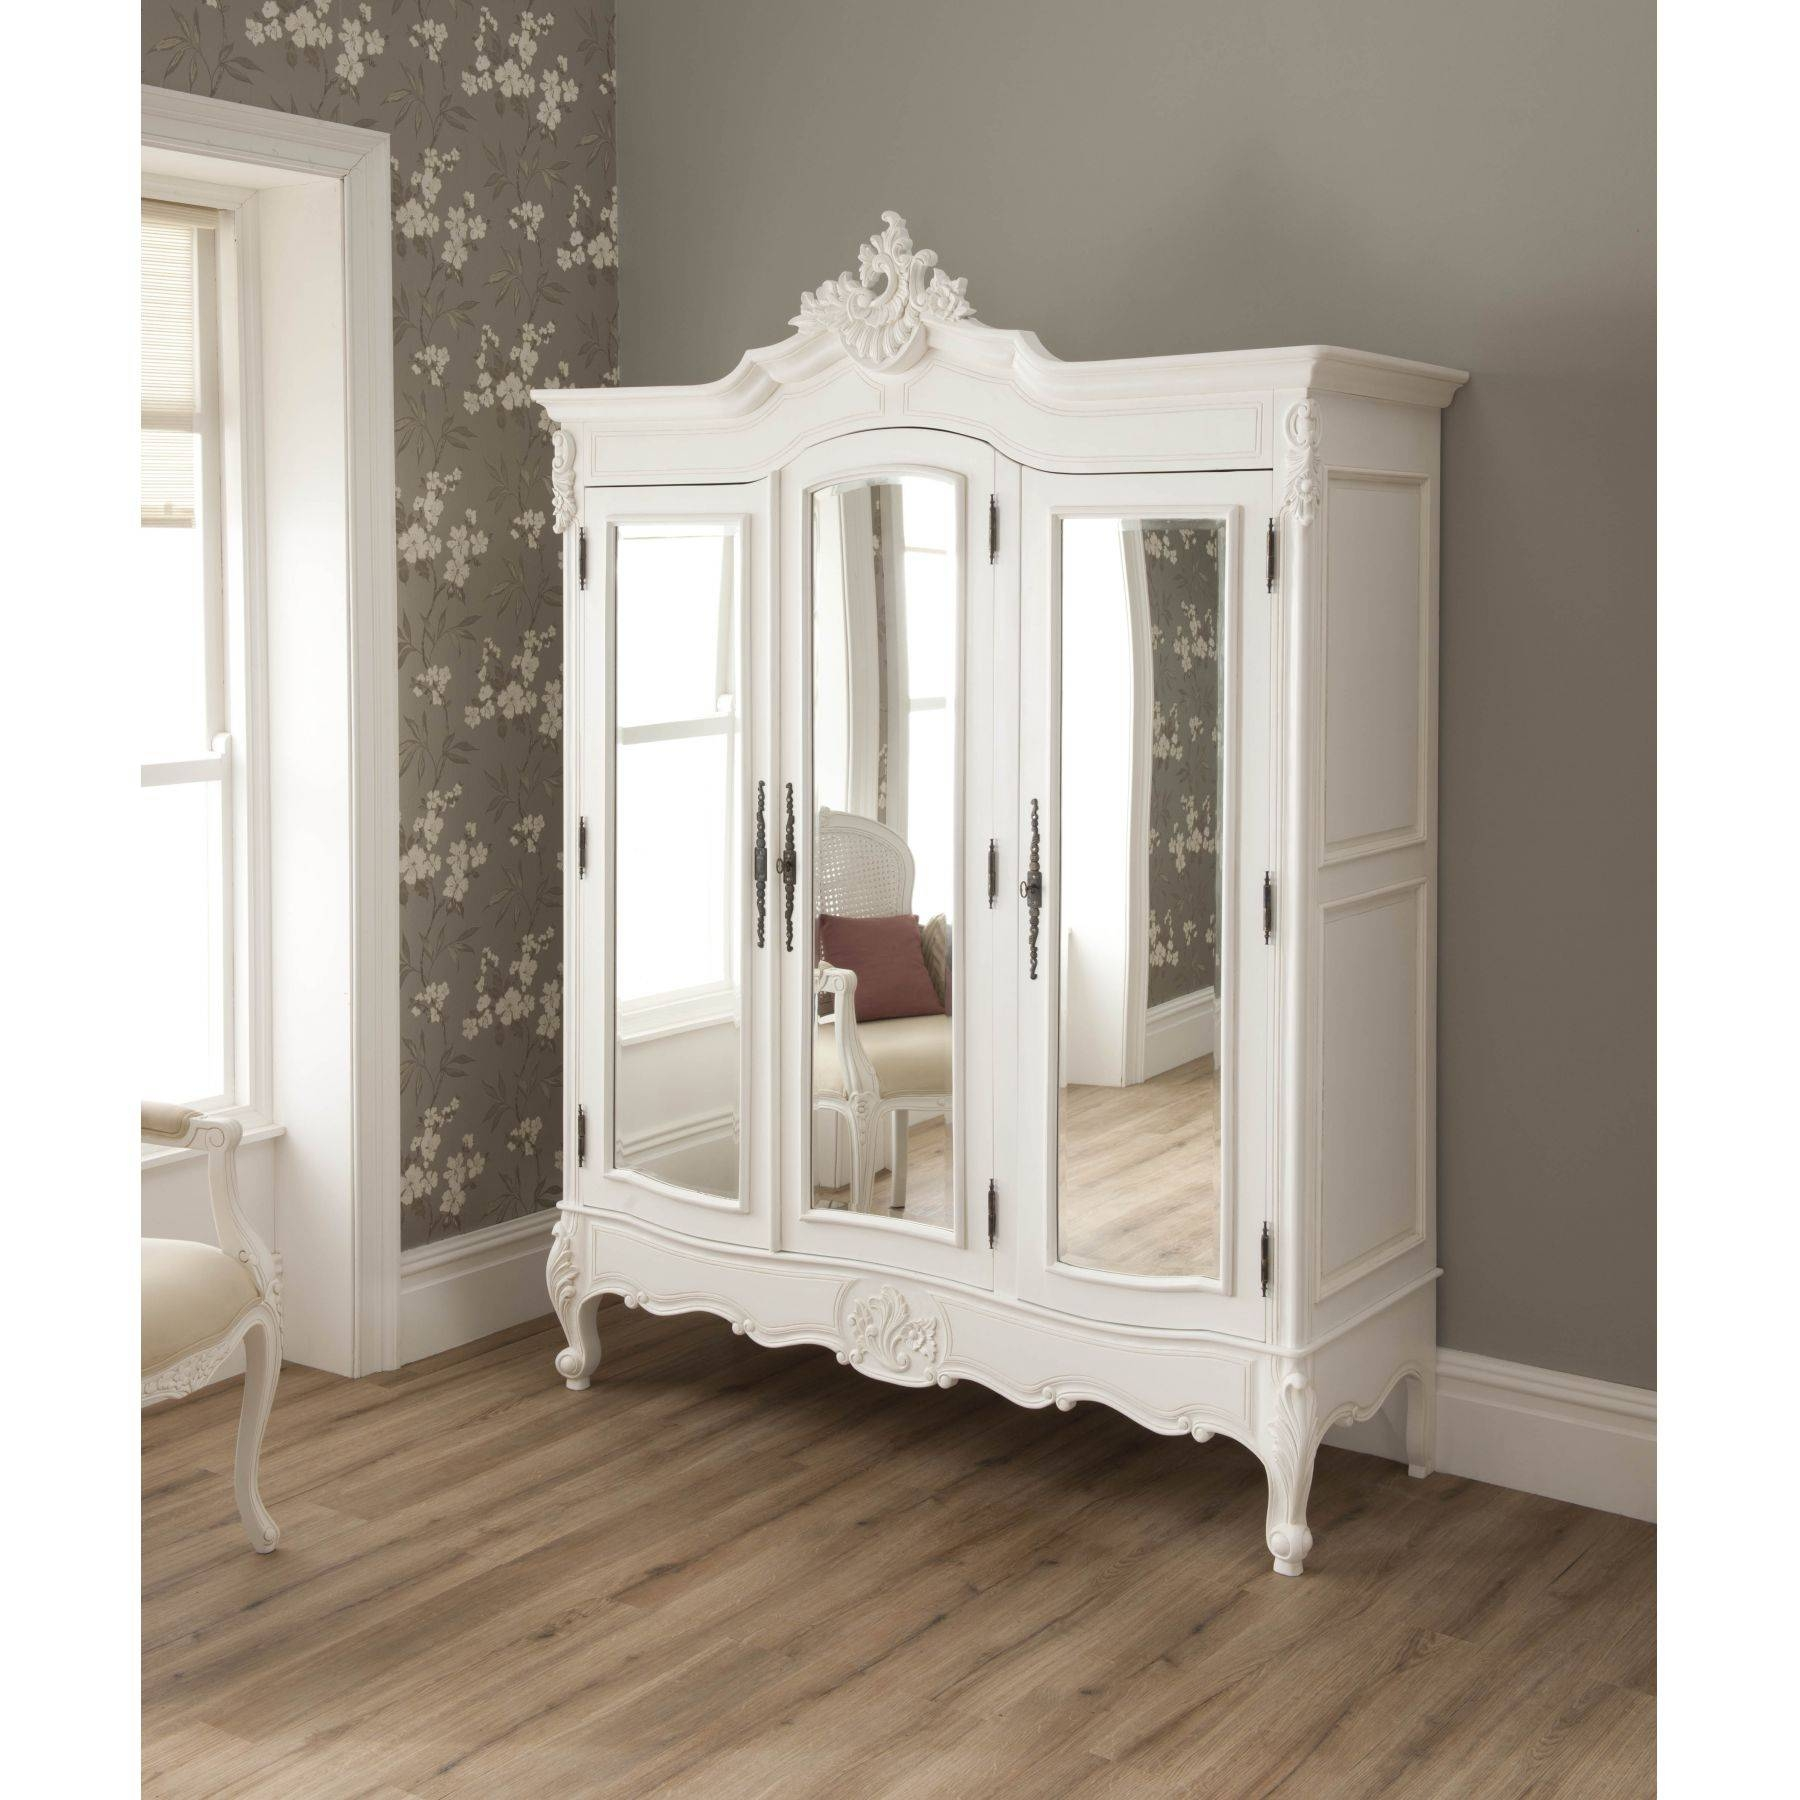 La Rochelle Shabby Chic Antique Style Wardrobe | Shabby Chic Furniture in French Style Armoires Wardrobes (Image 12 of 15)